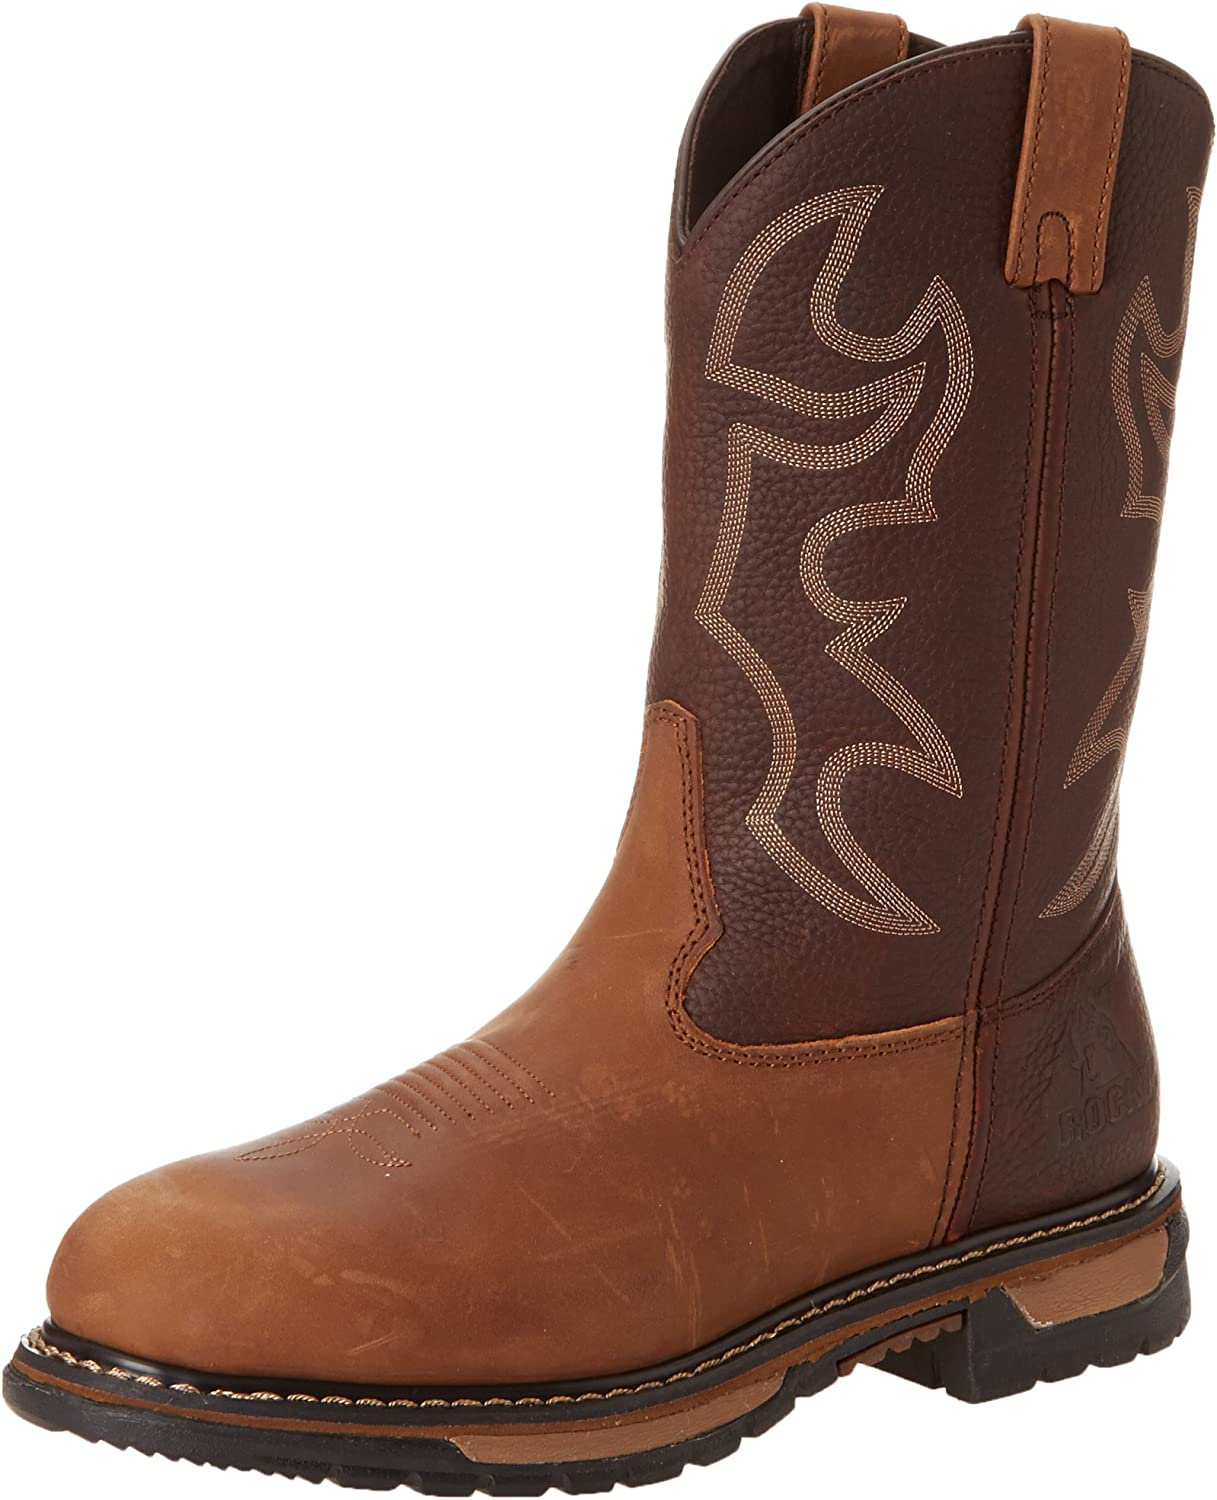 Rocky Men's OFFer Original Ride Bridal Boot Spring new work one after another Work